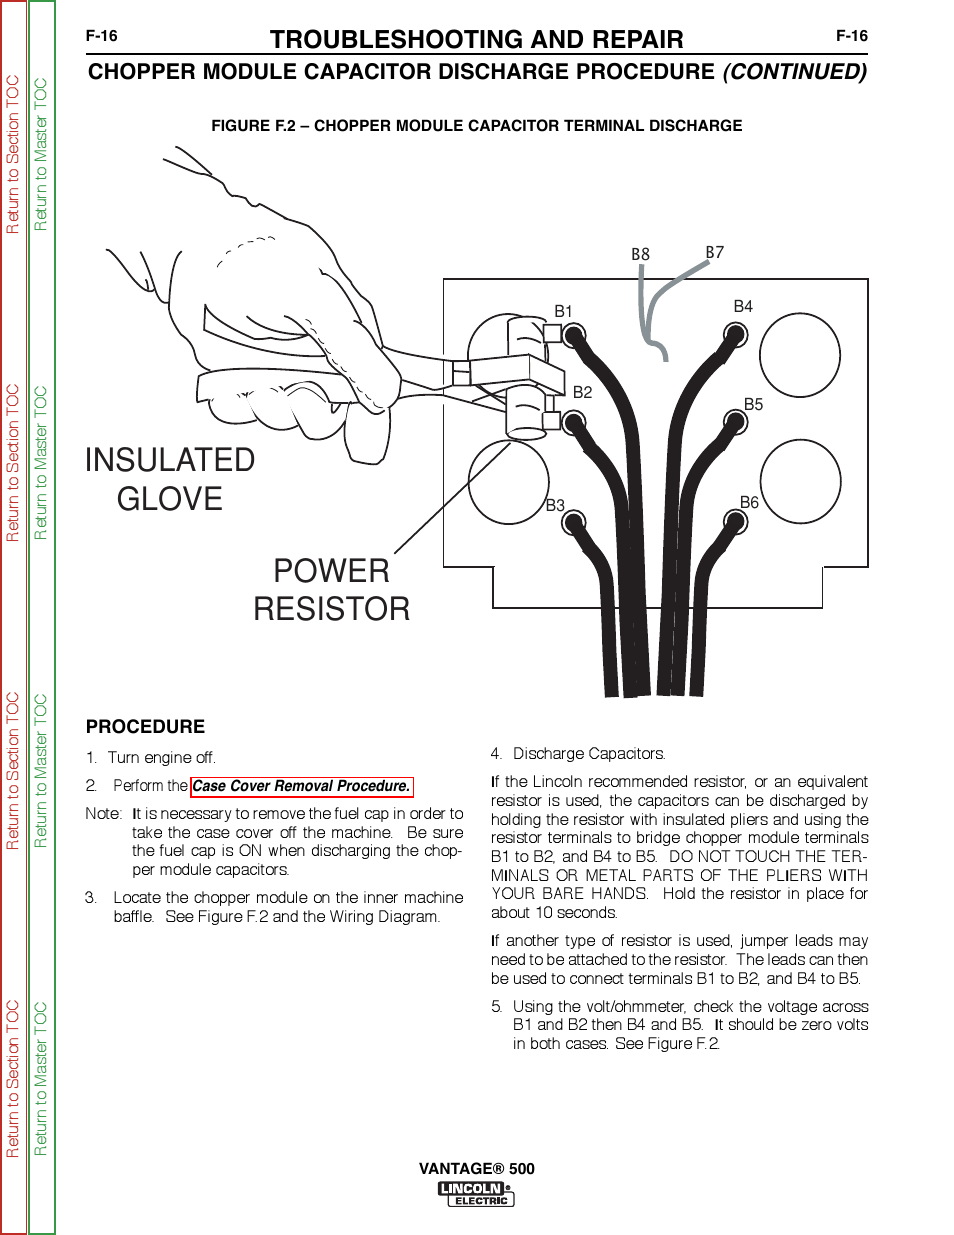 hight resolution of power resistor insulated glove troubleshooting and repair lincoln electric vantage svm178 b manuel d utilisation page 204 278